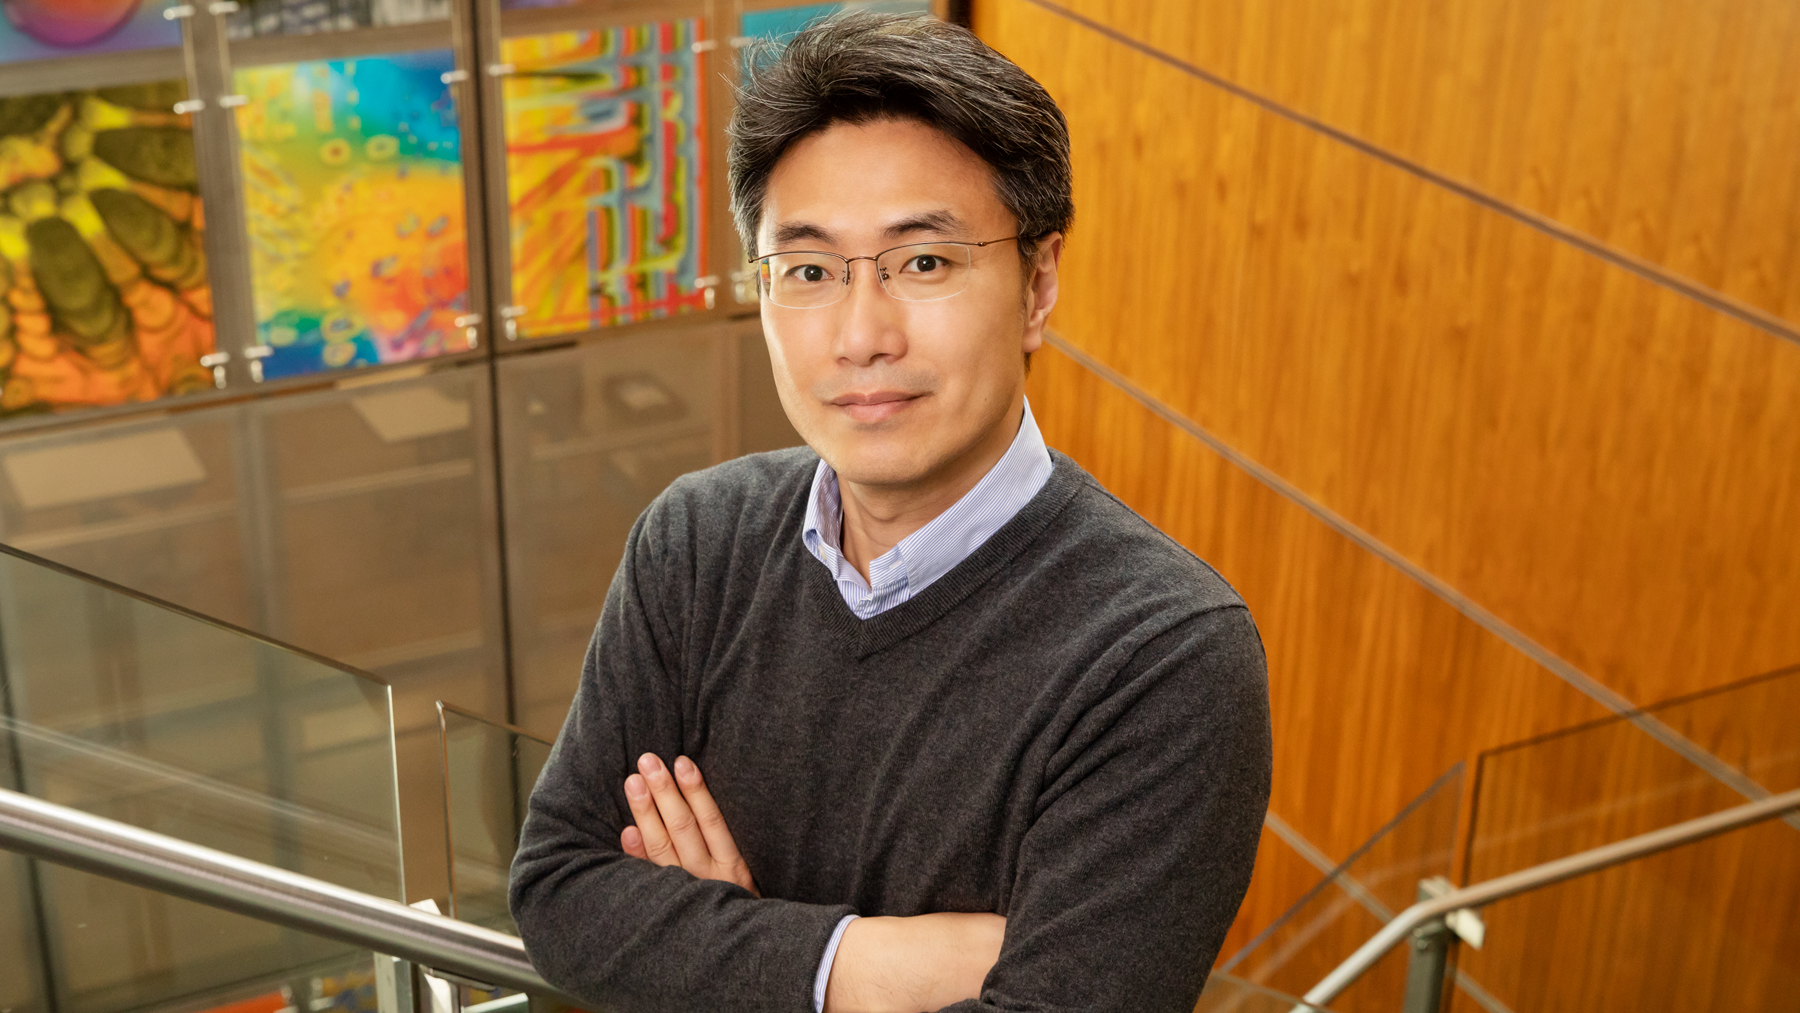 Professor Yong-Su Jin led a team that engineered a strain of yeast to produce the low-calorie natural sweetener tagatose from lactose. Photo by Brian Stauffer